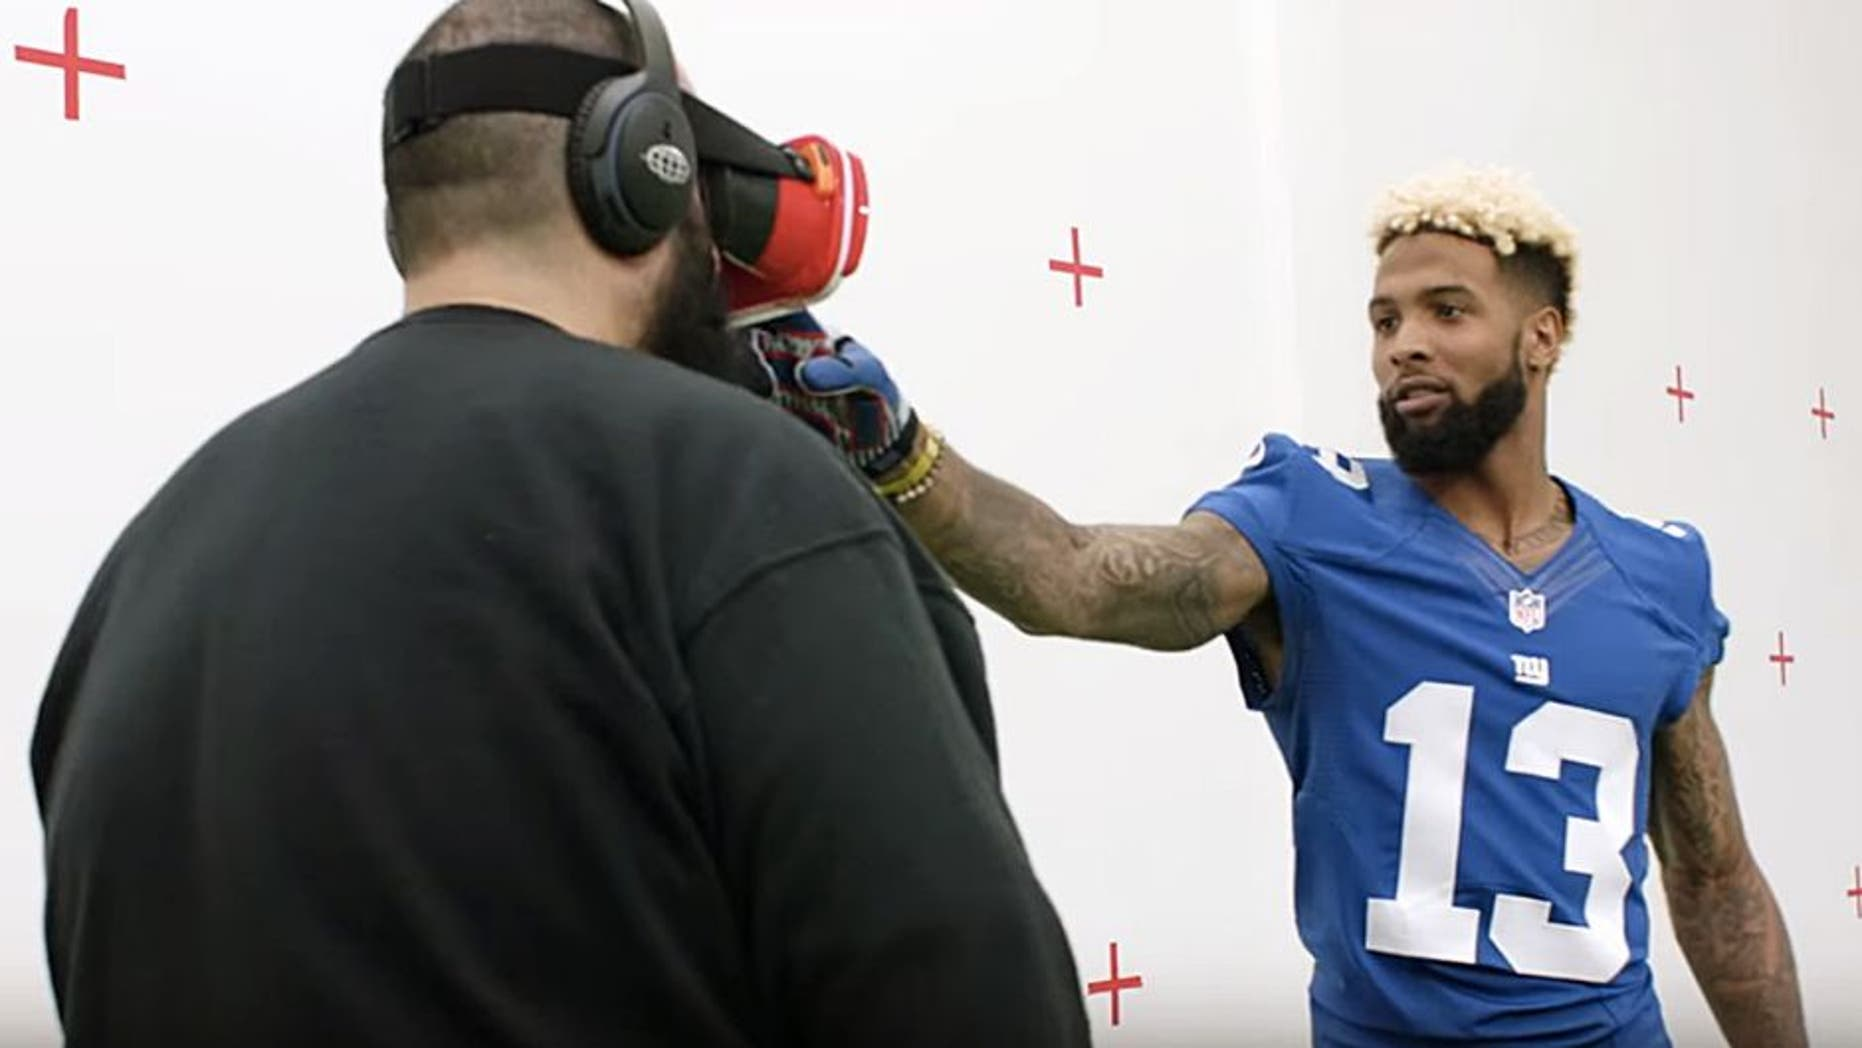 http://www.giants.com/news-and-blogs/LifeStyleFitnessNews/article-1/Better-Reality-with-Odell-Beckham-Jr/df2fce2f-1a78-42ec-bc43-cae0fbf6422c